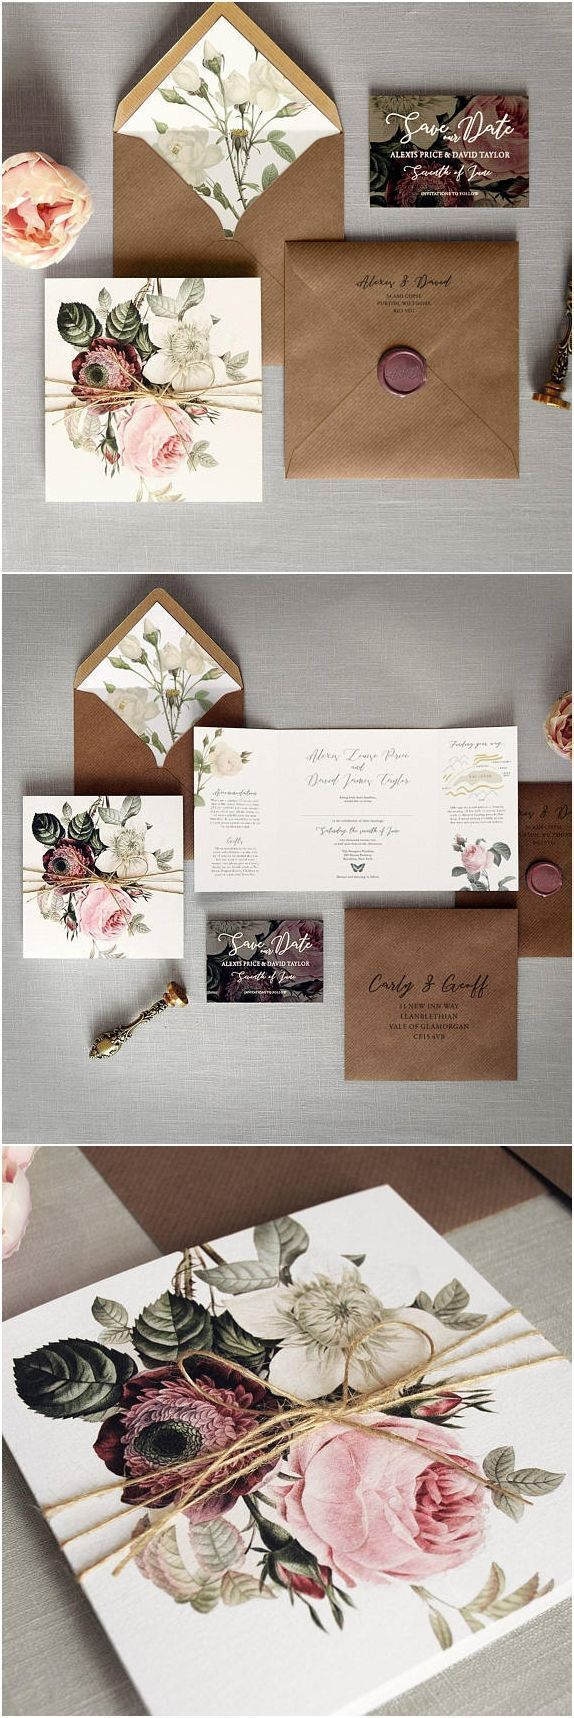 English Garden Luxury Folding Wedding Invitations